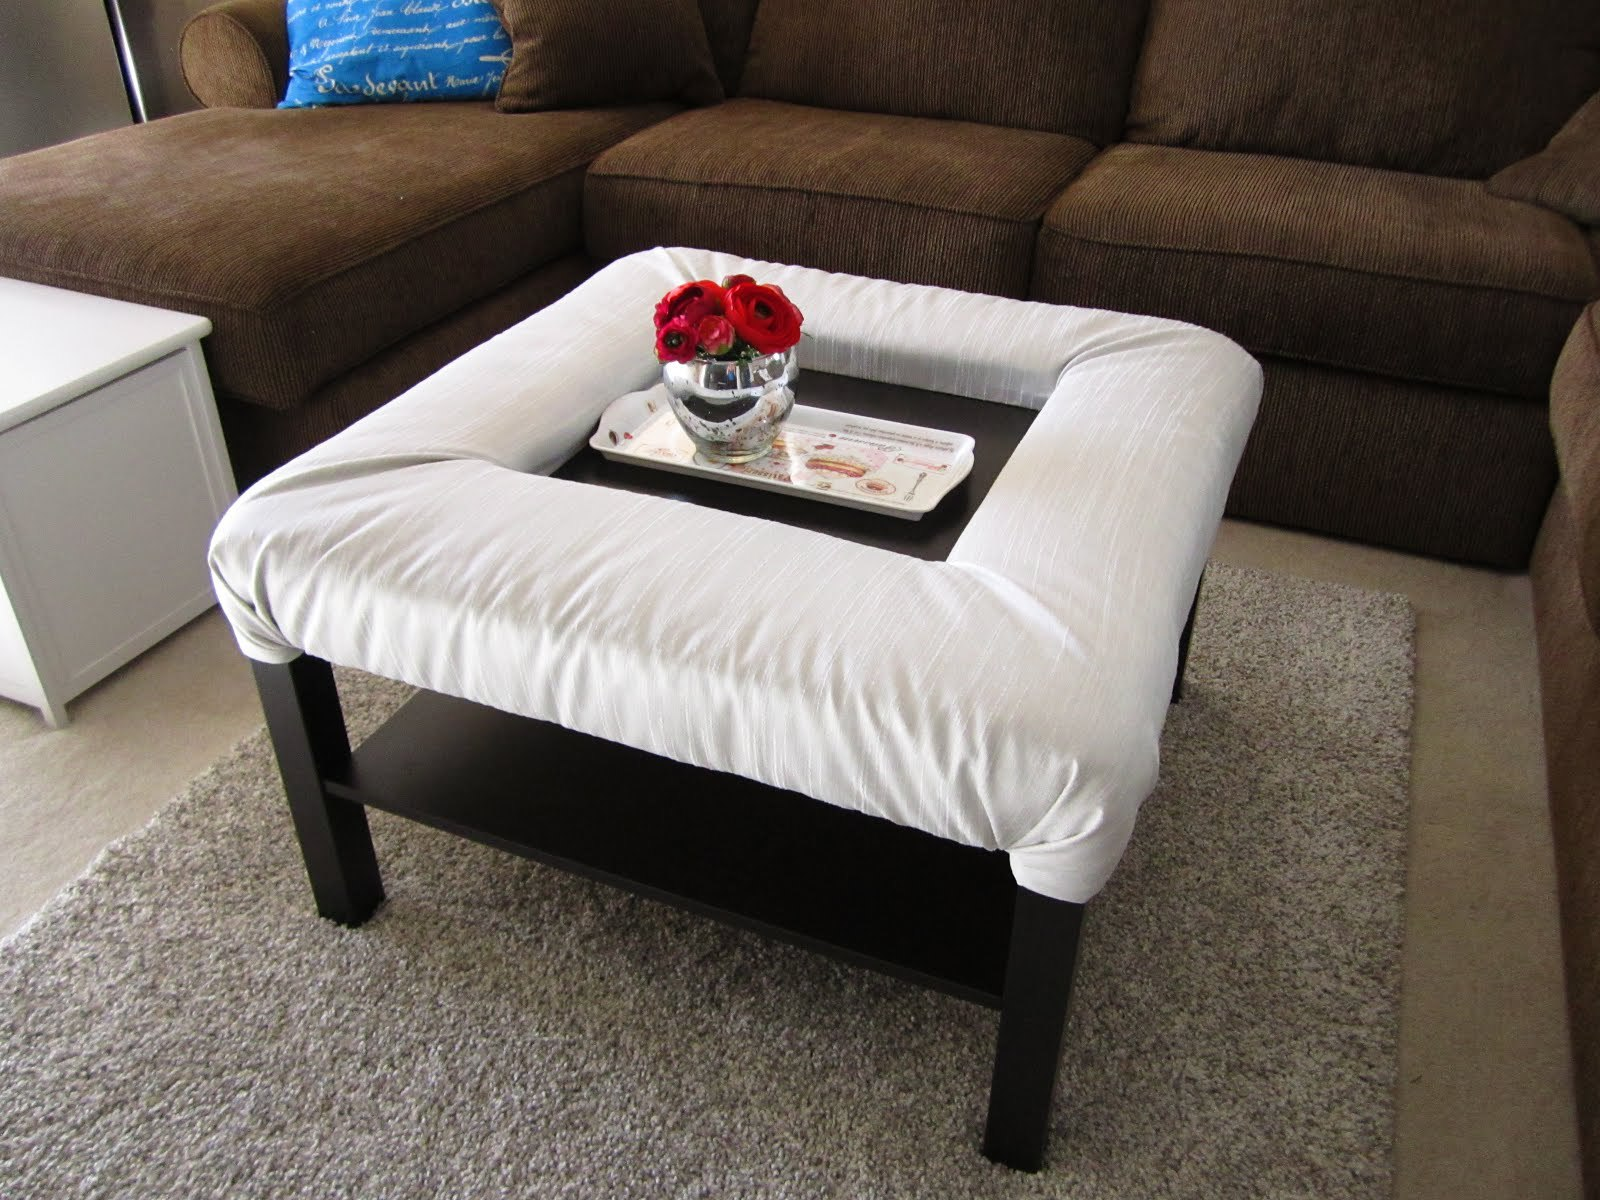 ikea lack coffee table design images photos pictures. Black Bedroom Furniture Sets. Home Design Ideas